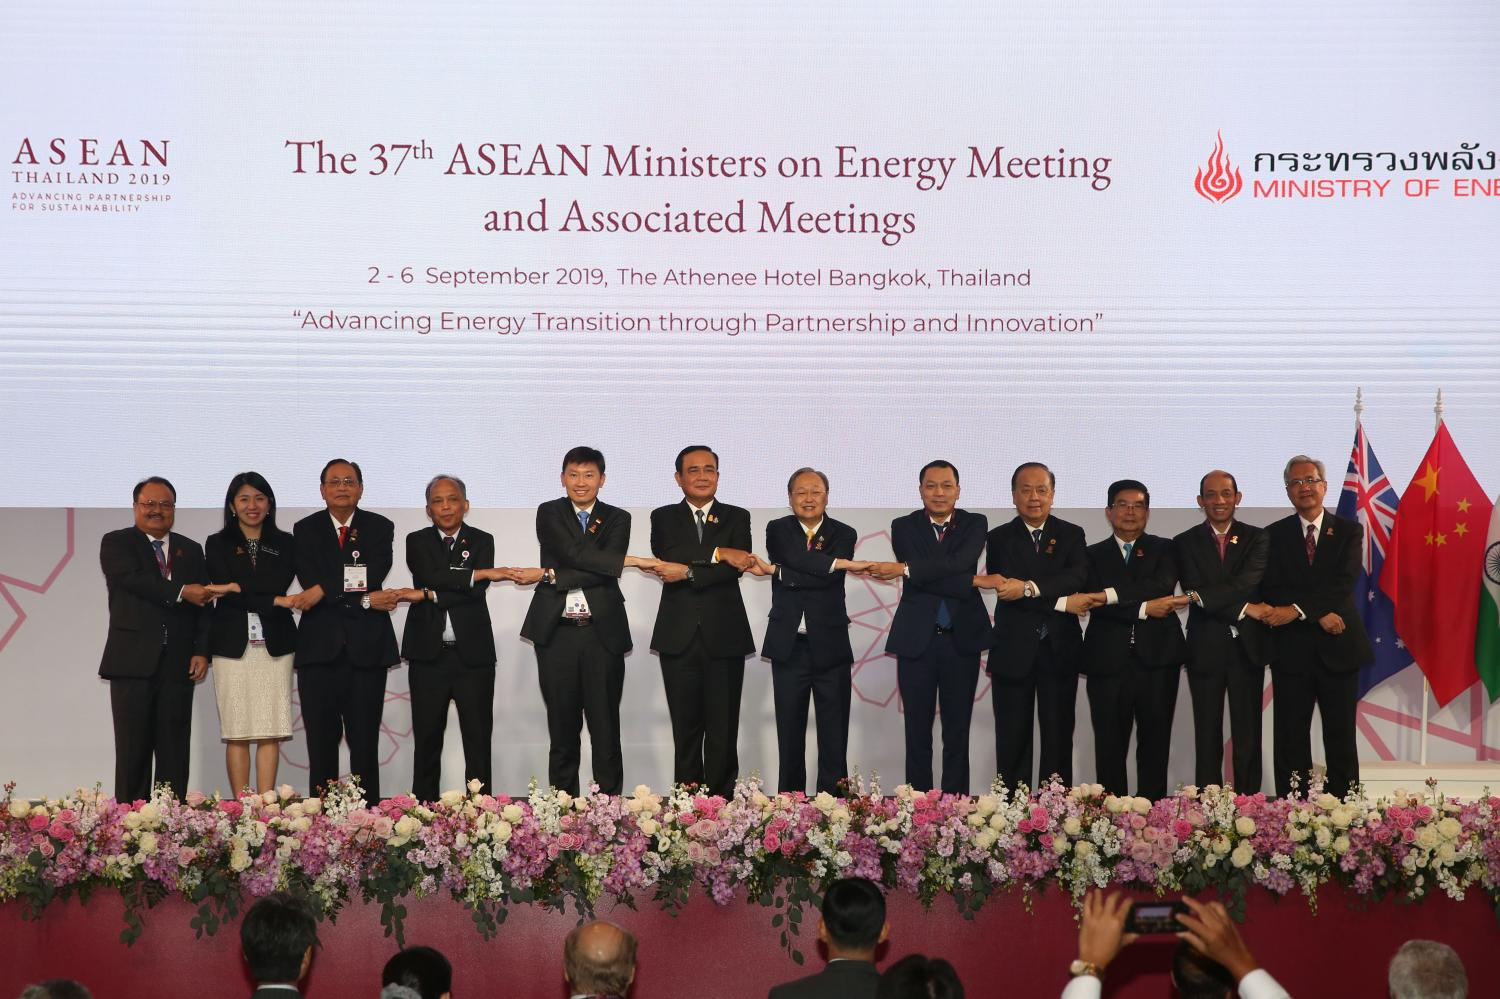 Prime Minister Prayut Chan-o-cha, sixth from left, with Asean energy ministers as he presides over the 37th Asean Ministers on Energy Meeting (Amem) at a hotel in Bangkok's Pathumwan district to drive discussions on effective energy management and energy stability for the region. (Photo by Varuth Hirunyatheb)